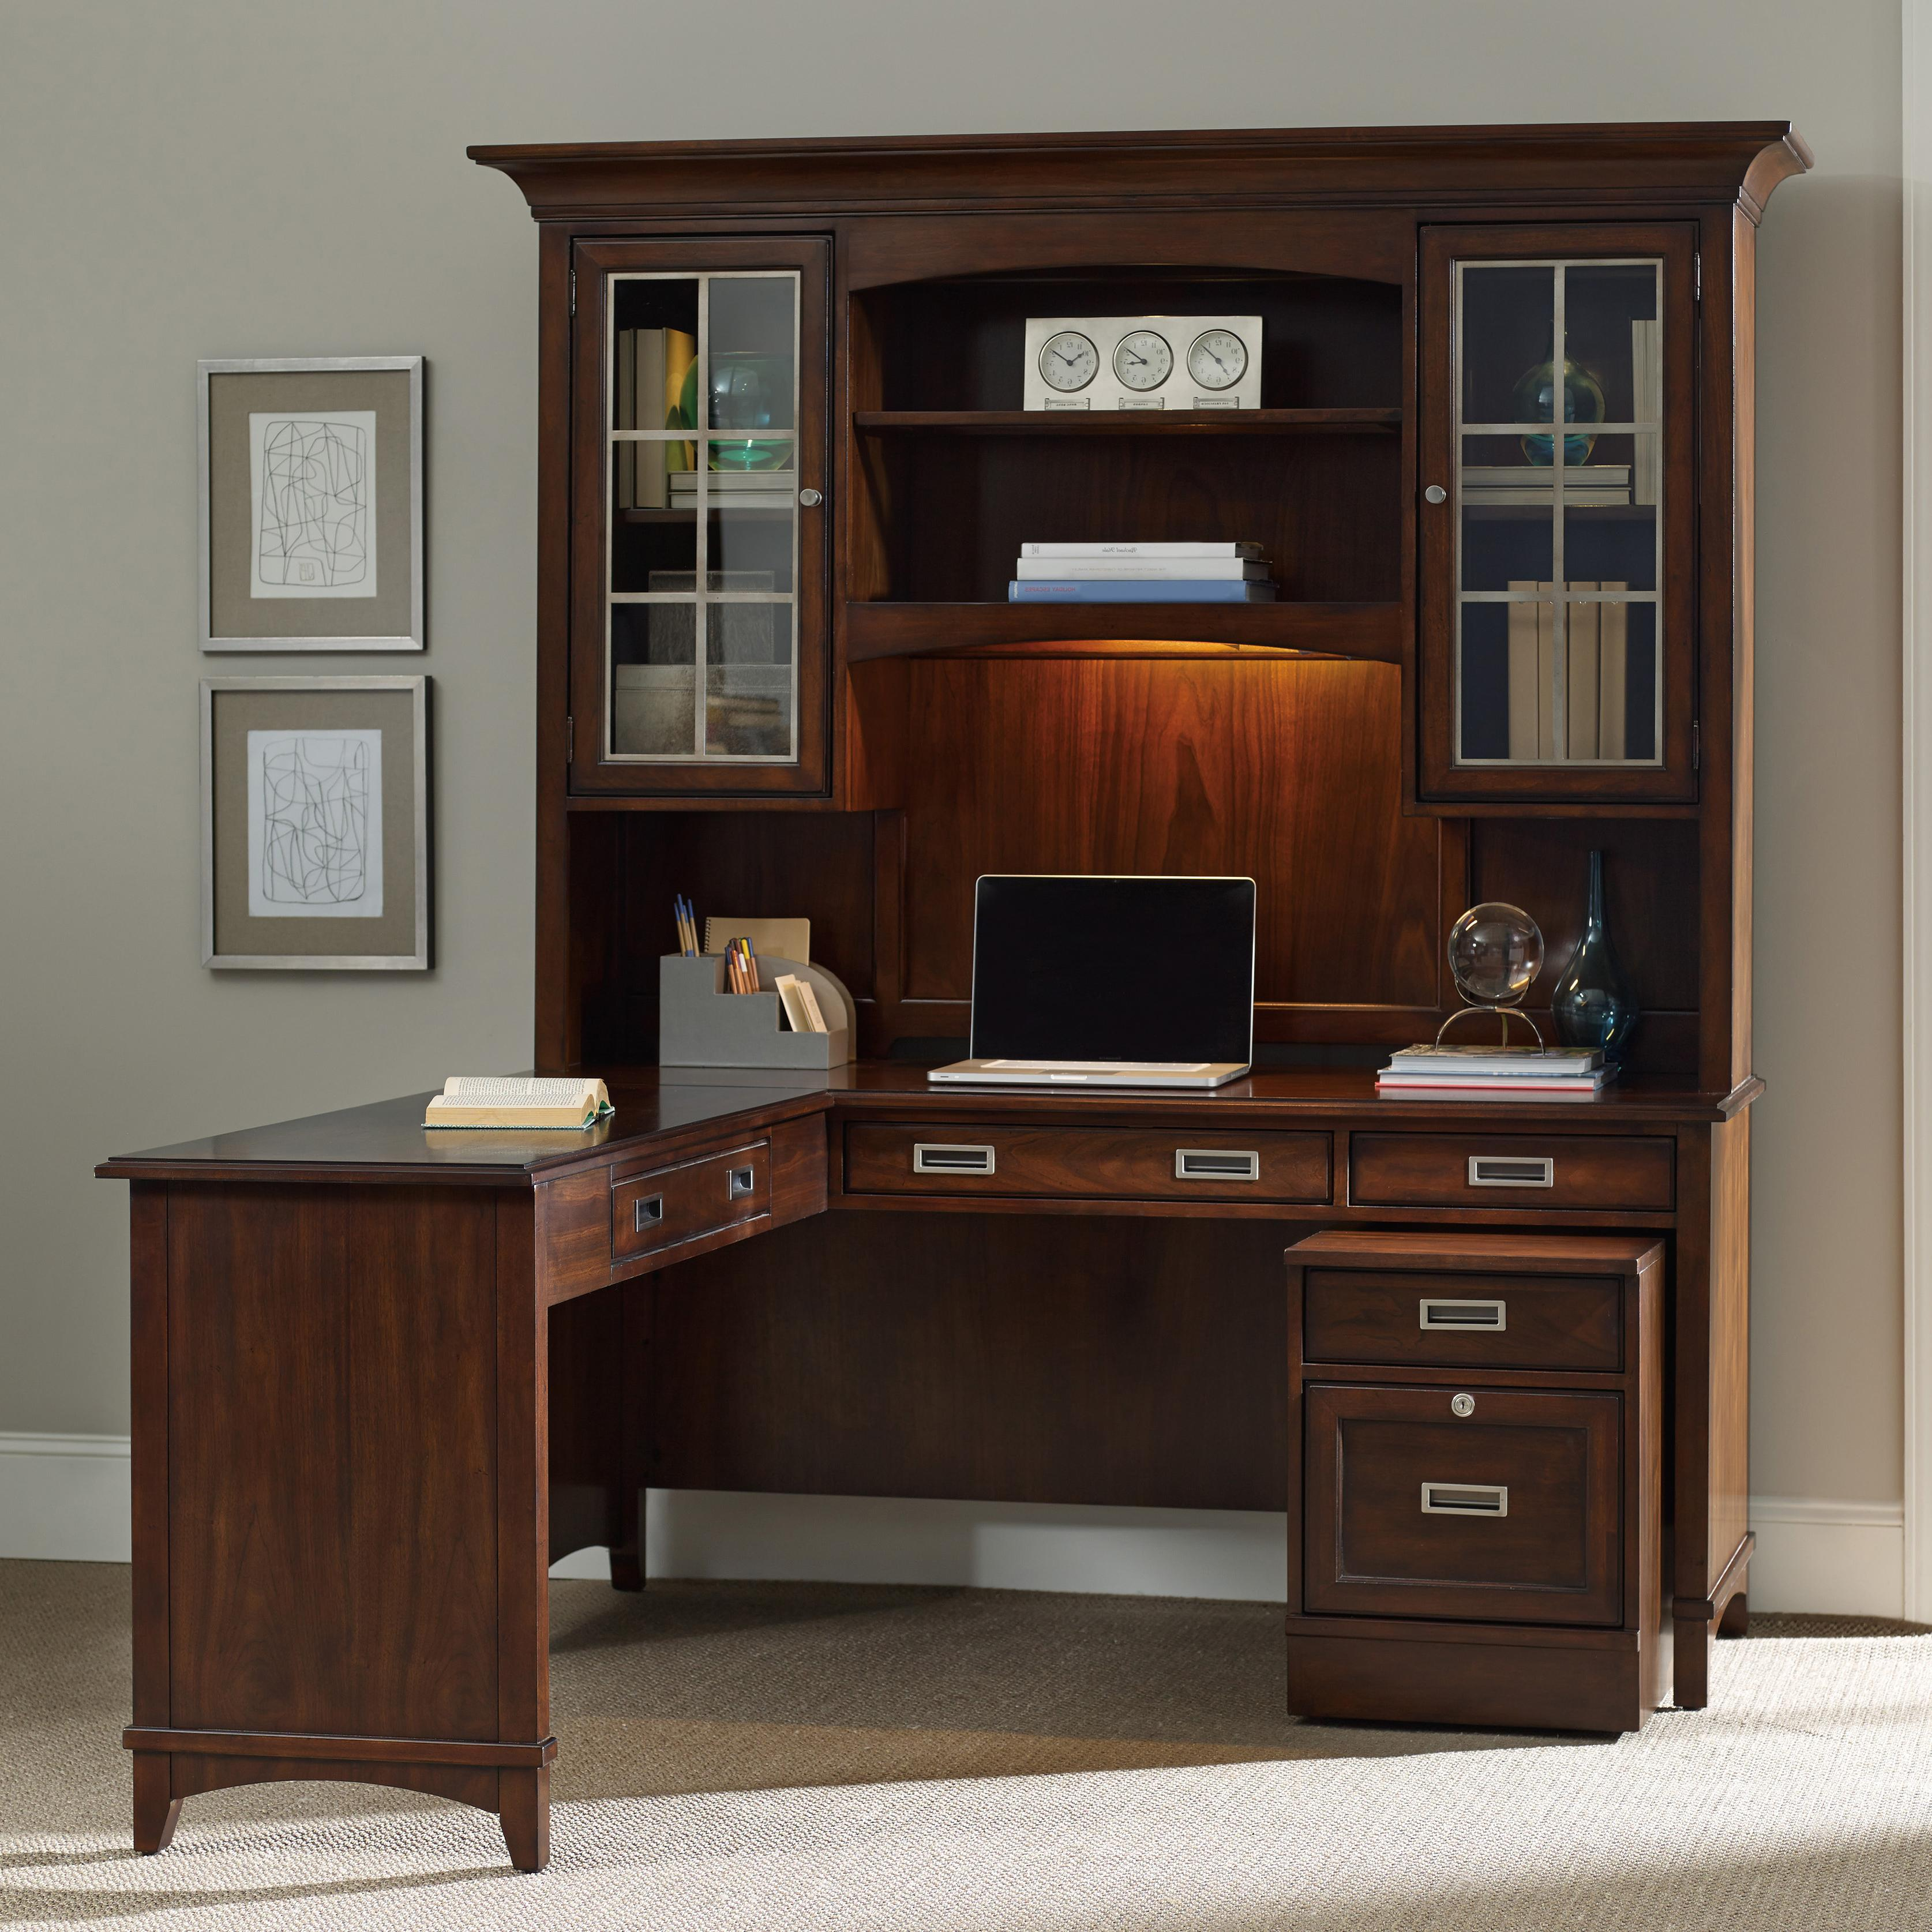 Rolling Filing Cabinets Latitude Walnut L Shaped Desk And Hutch Set With Rolling Filing Cabinet By Hamilton Home At Rotmans